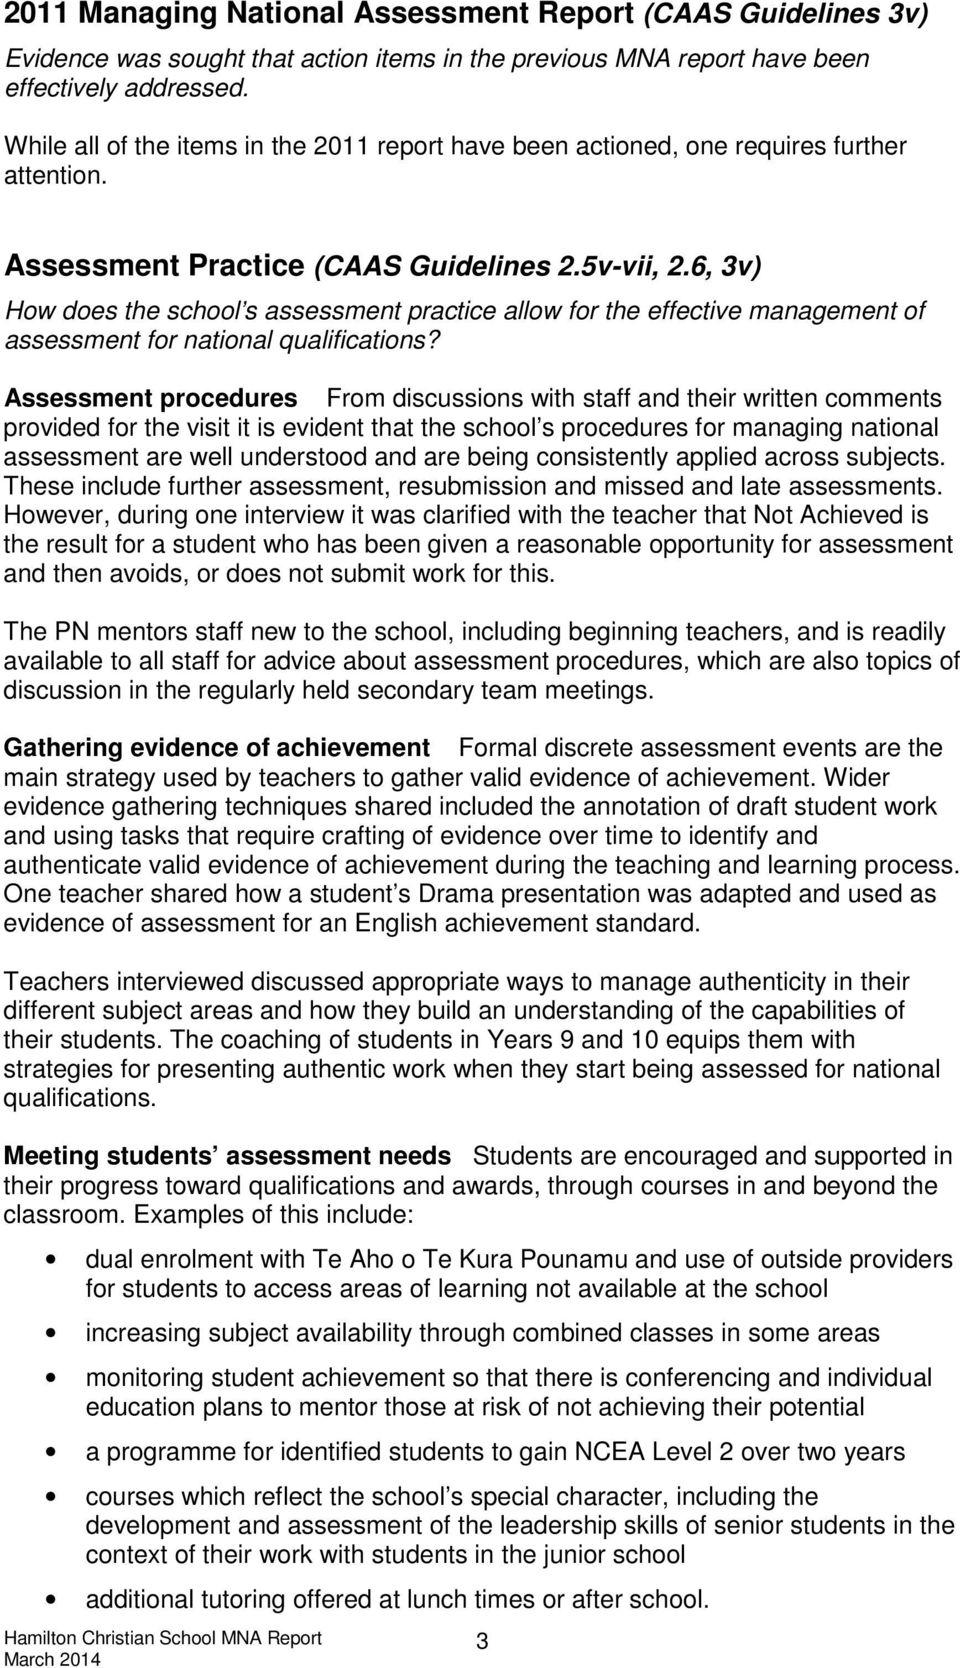 6, 3v) How does the school s assessment practice allow for the effective management of assessment for national qualifications?